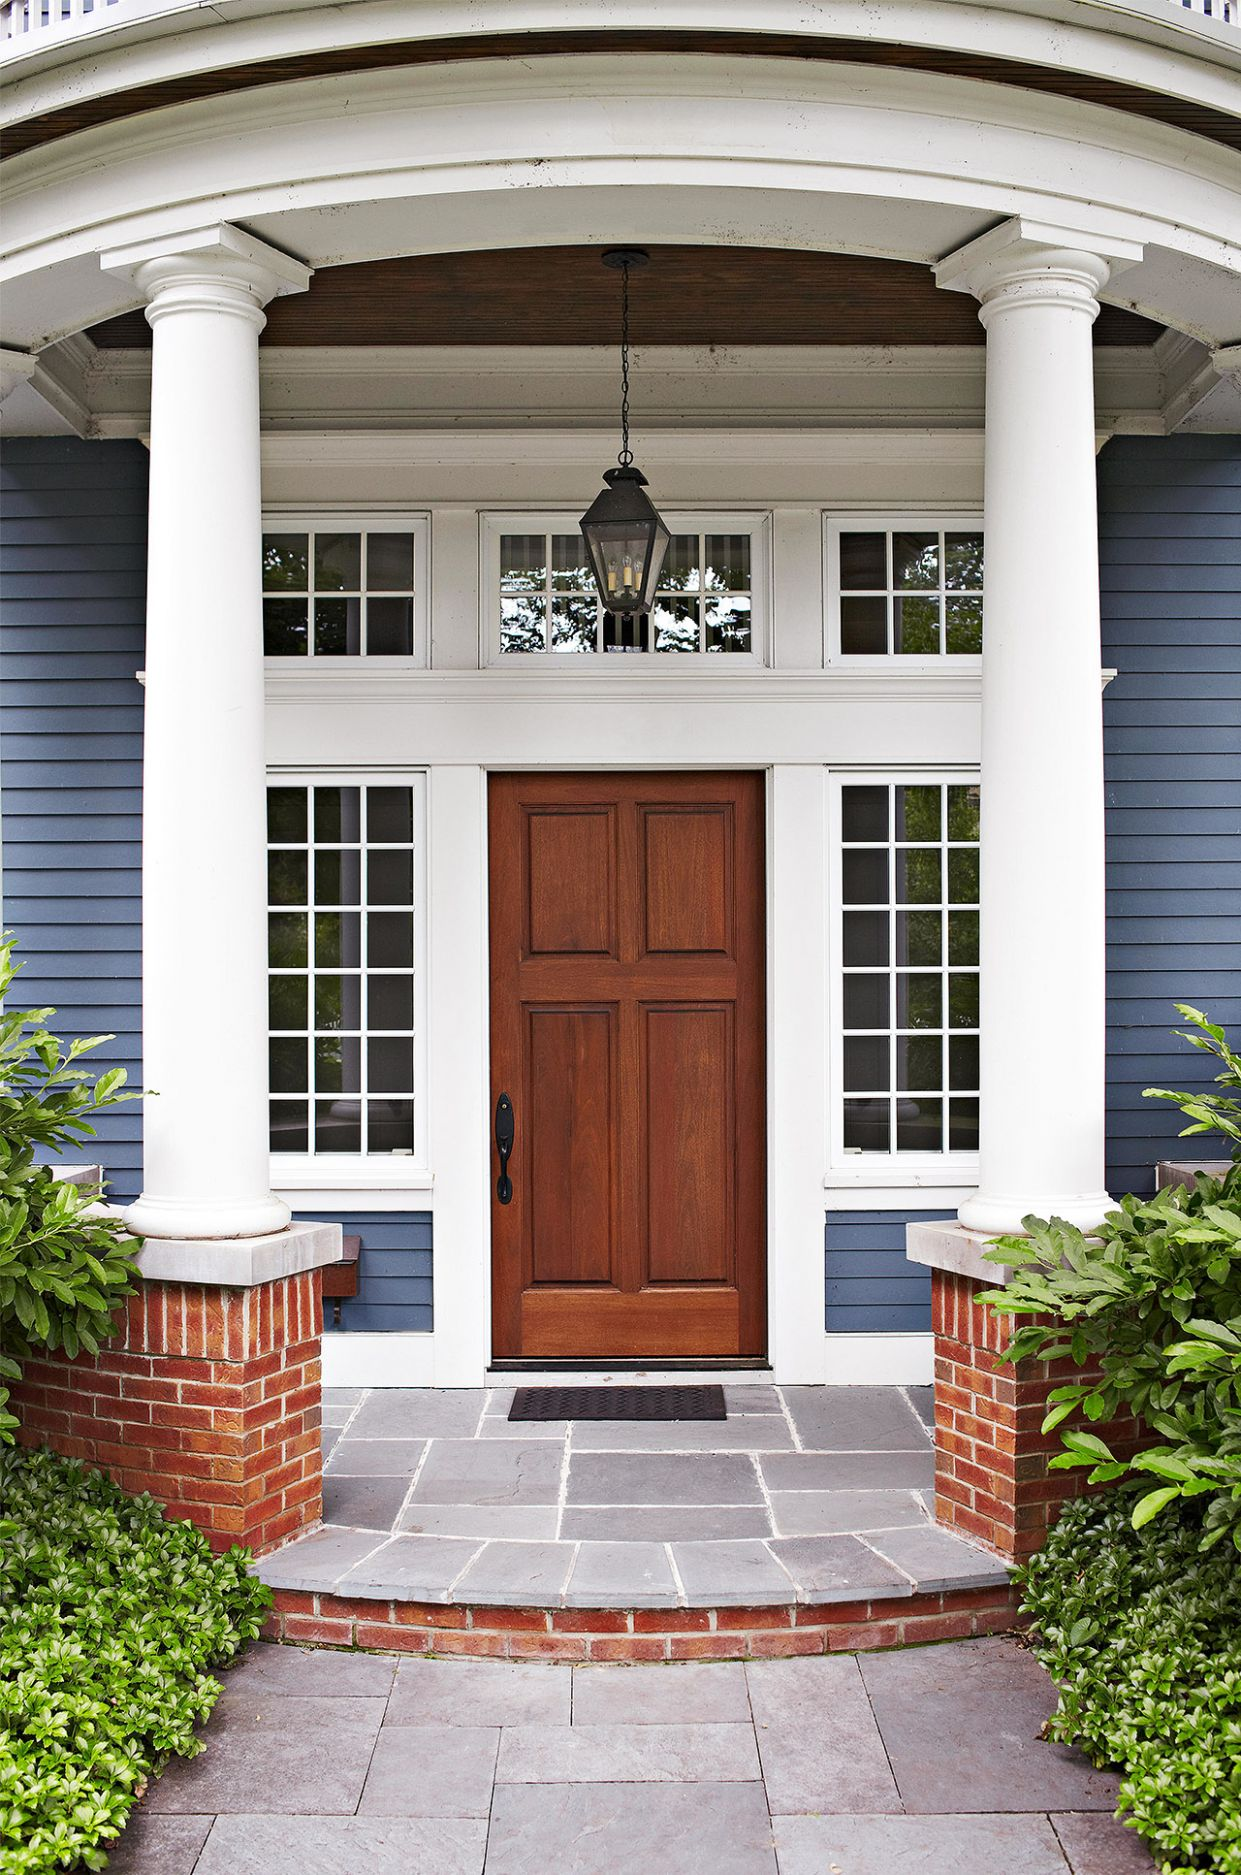 12 Easy Ways to Enhance Your Front Entry for an Inviting First ...